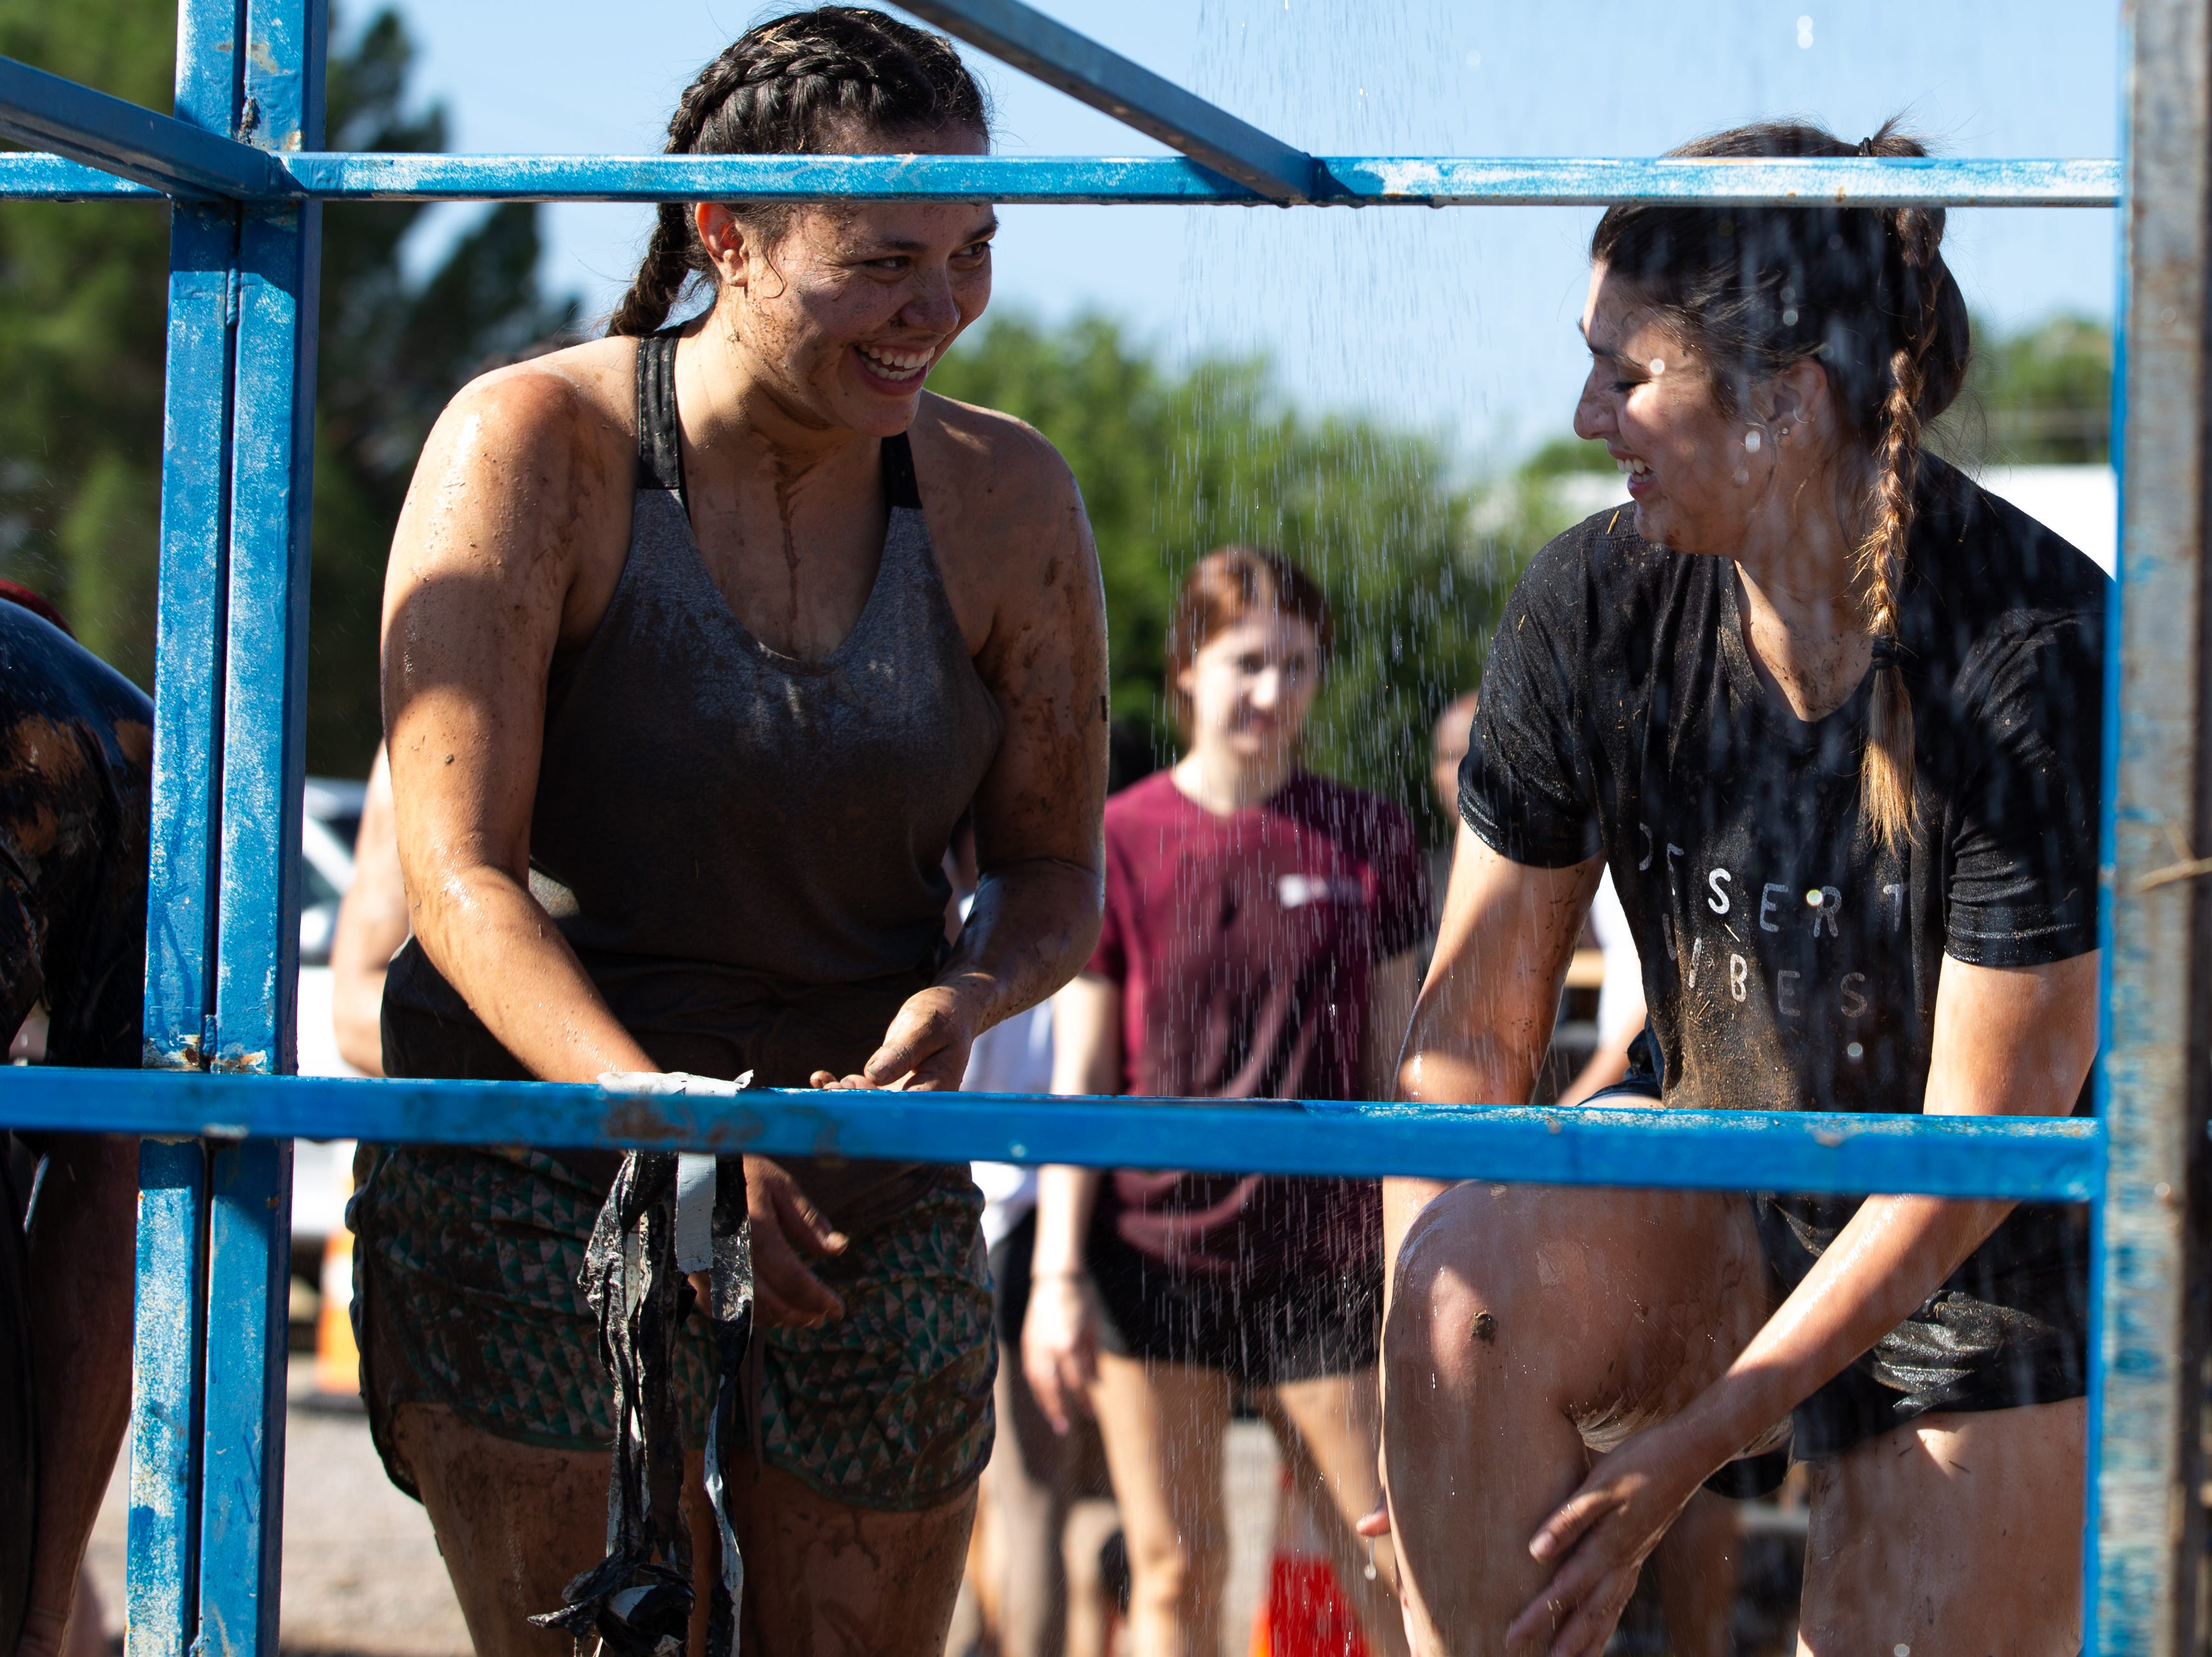 Vanessa Padilla, left and Julia Sierra having a good time washing off the mud at the 9th Annual Mudd Volleyball tournament on September 8, 2018.